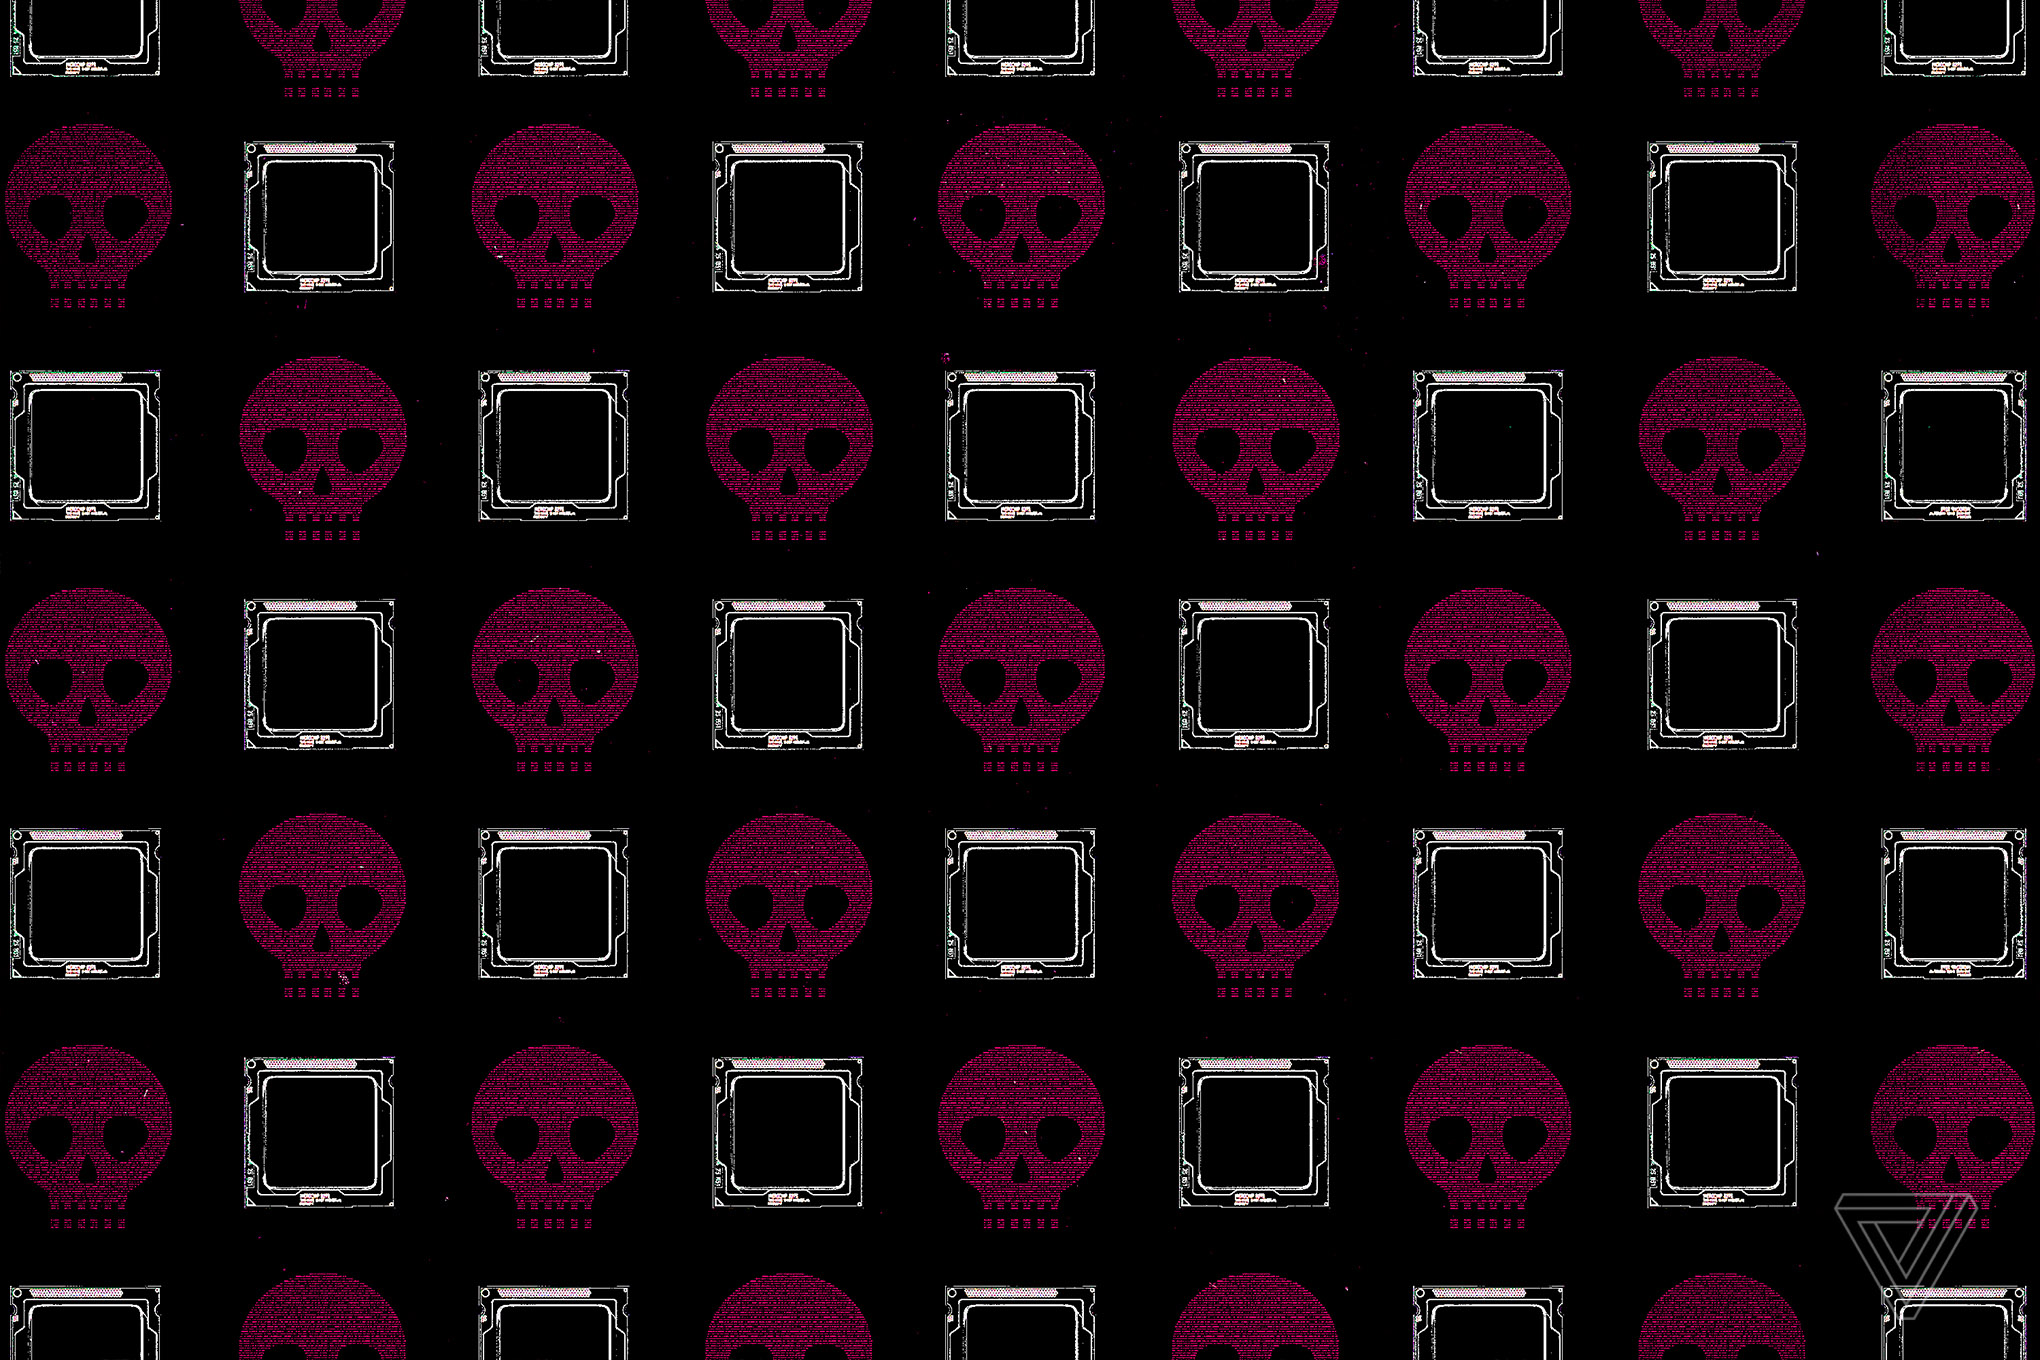 The golden age of dark web drug markets is over